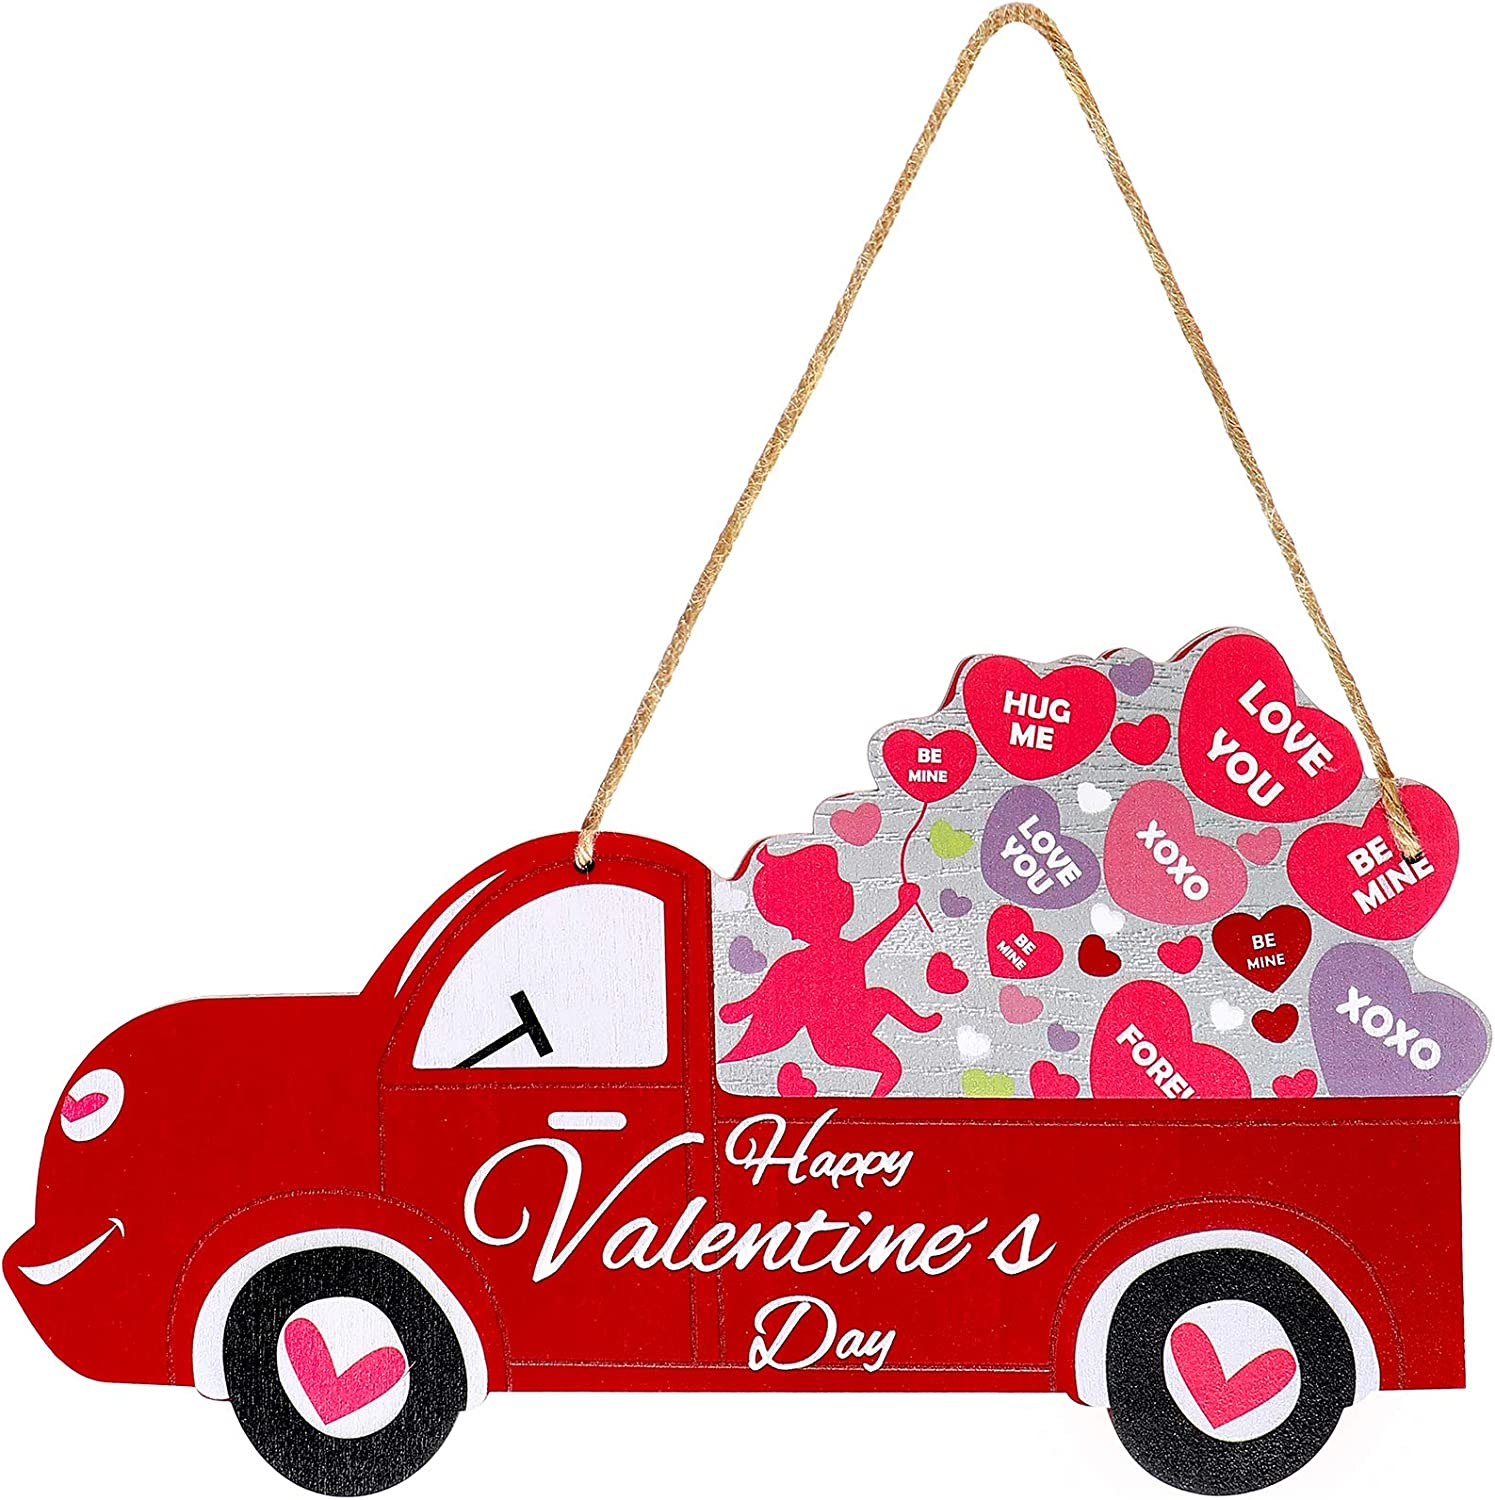 Jetec Happy Valentine's Day Wooden Sign Vintage Truck Decor Door Sign Wall Hanging Decorations for Valentine's Day, Wedding, Party, Anniversary, Home Decoration, 11.8 x 6.7 Inch